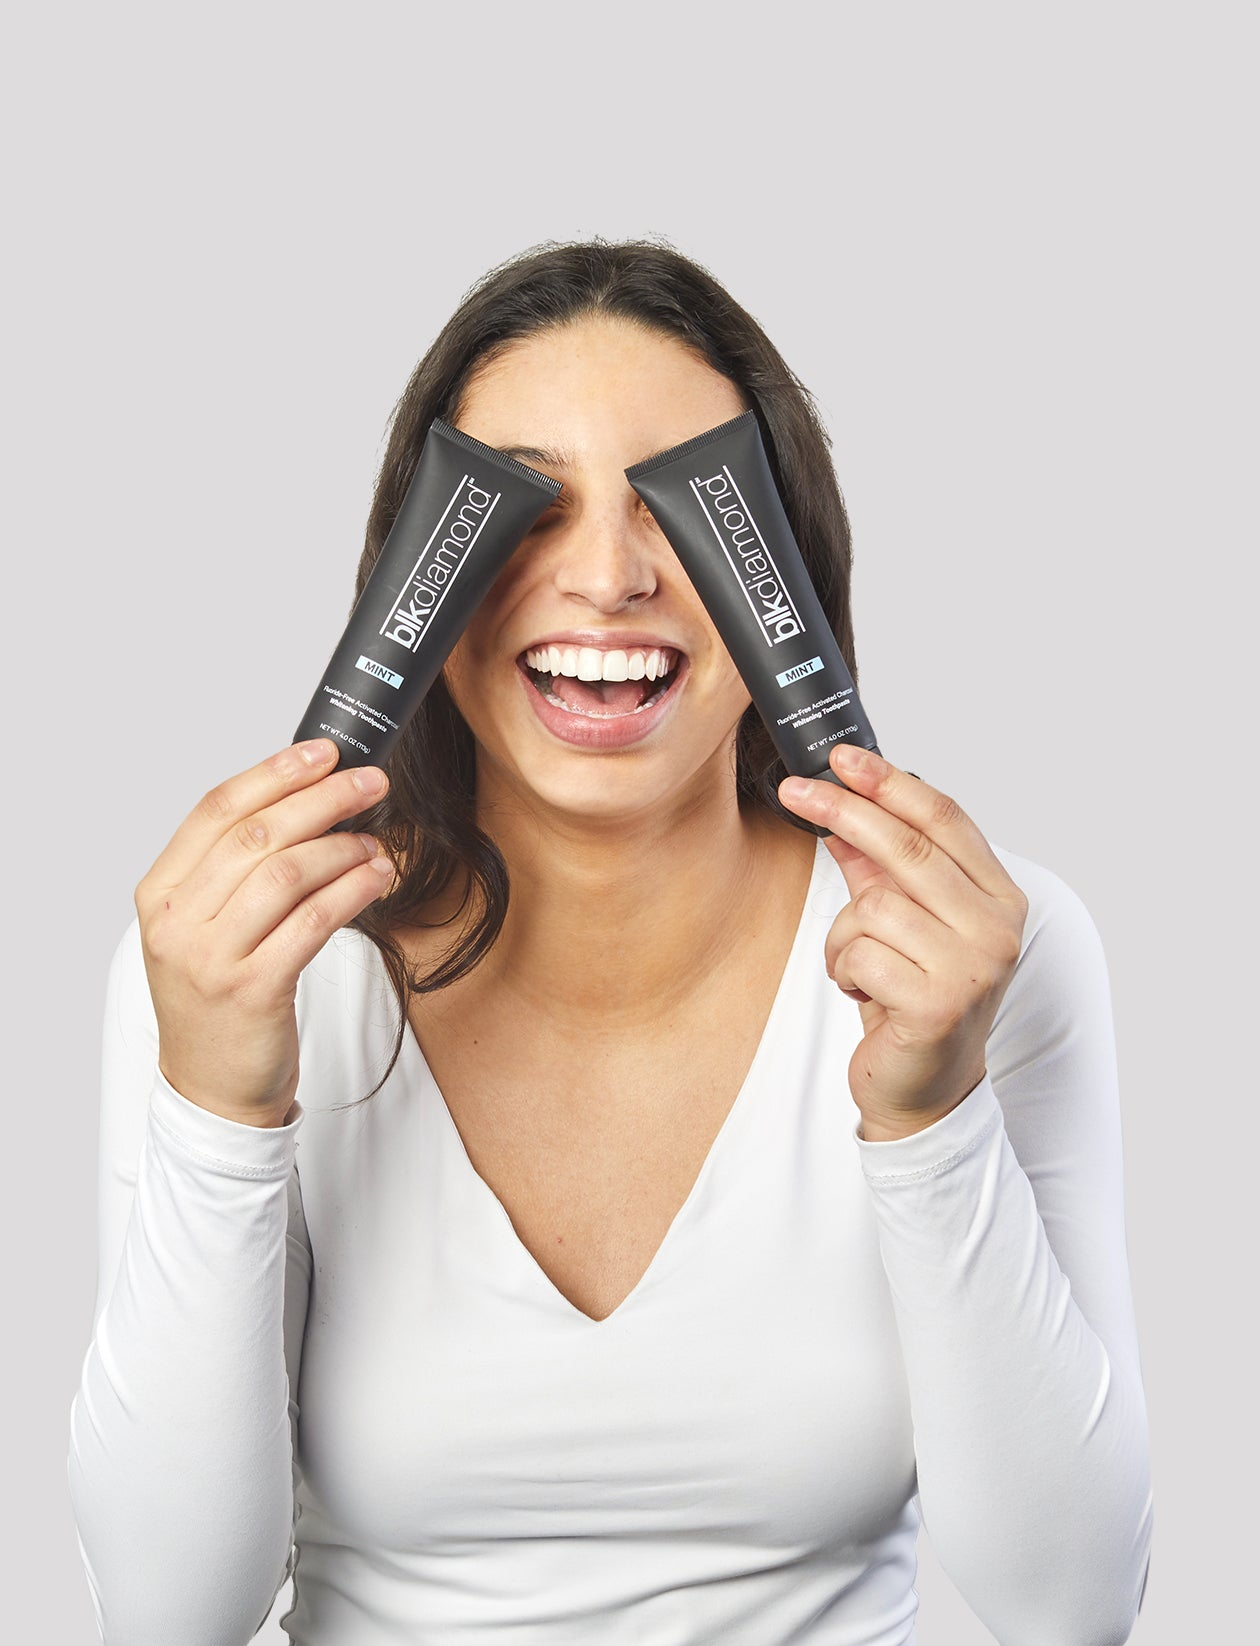 CHARCOAL TOOTHPASTE - TWIN PACK